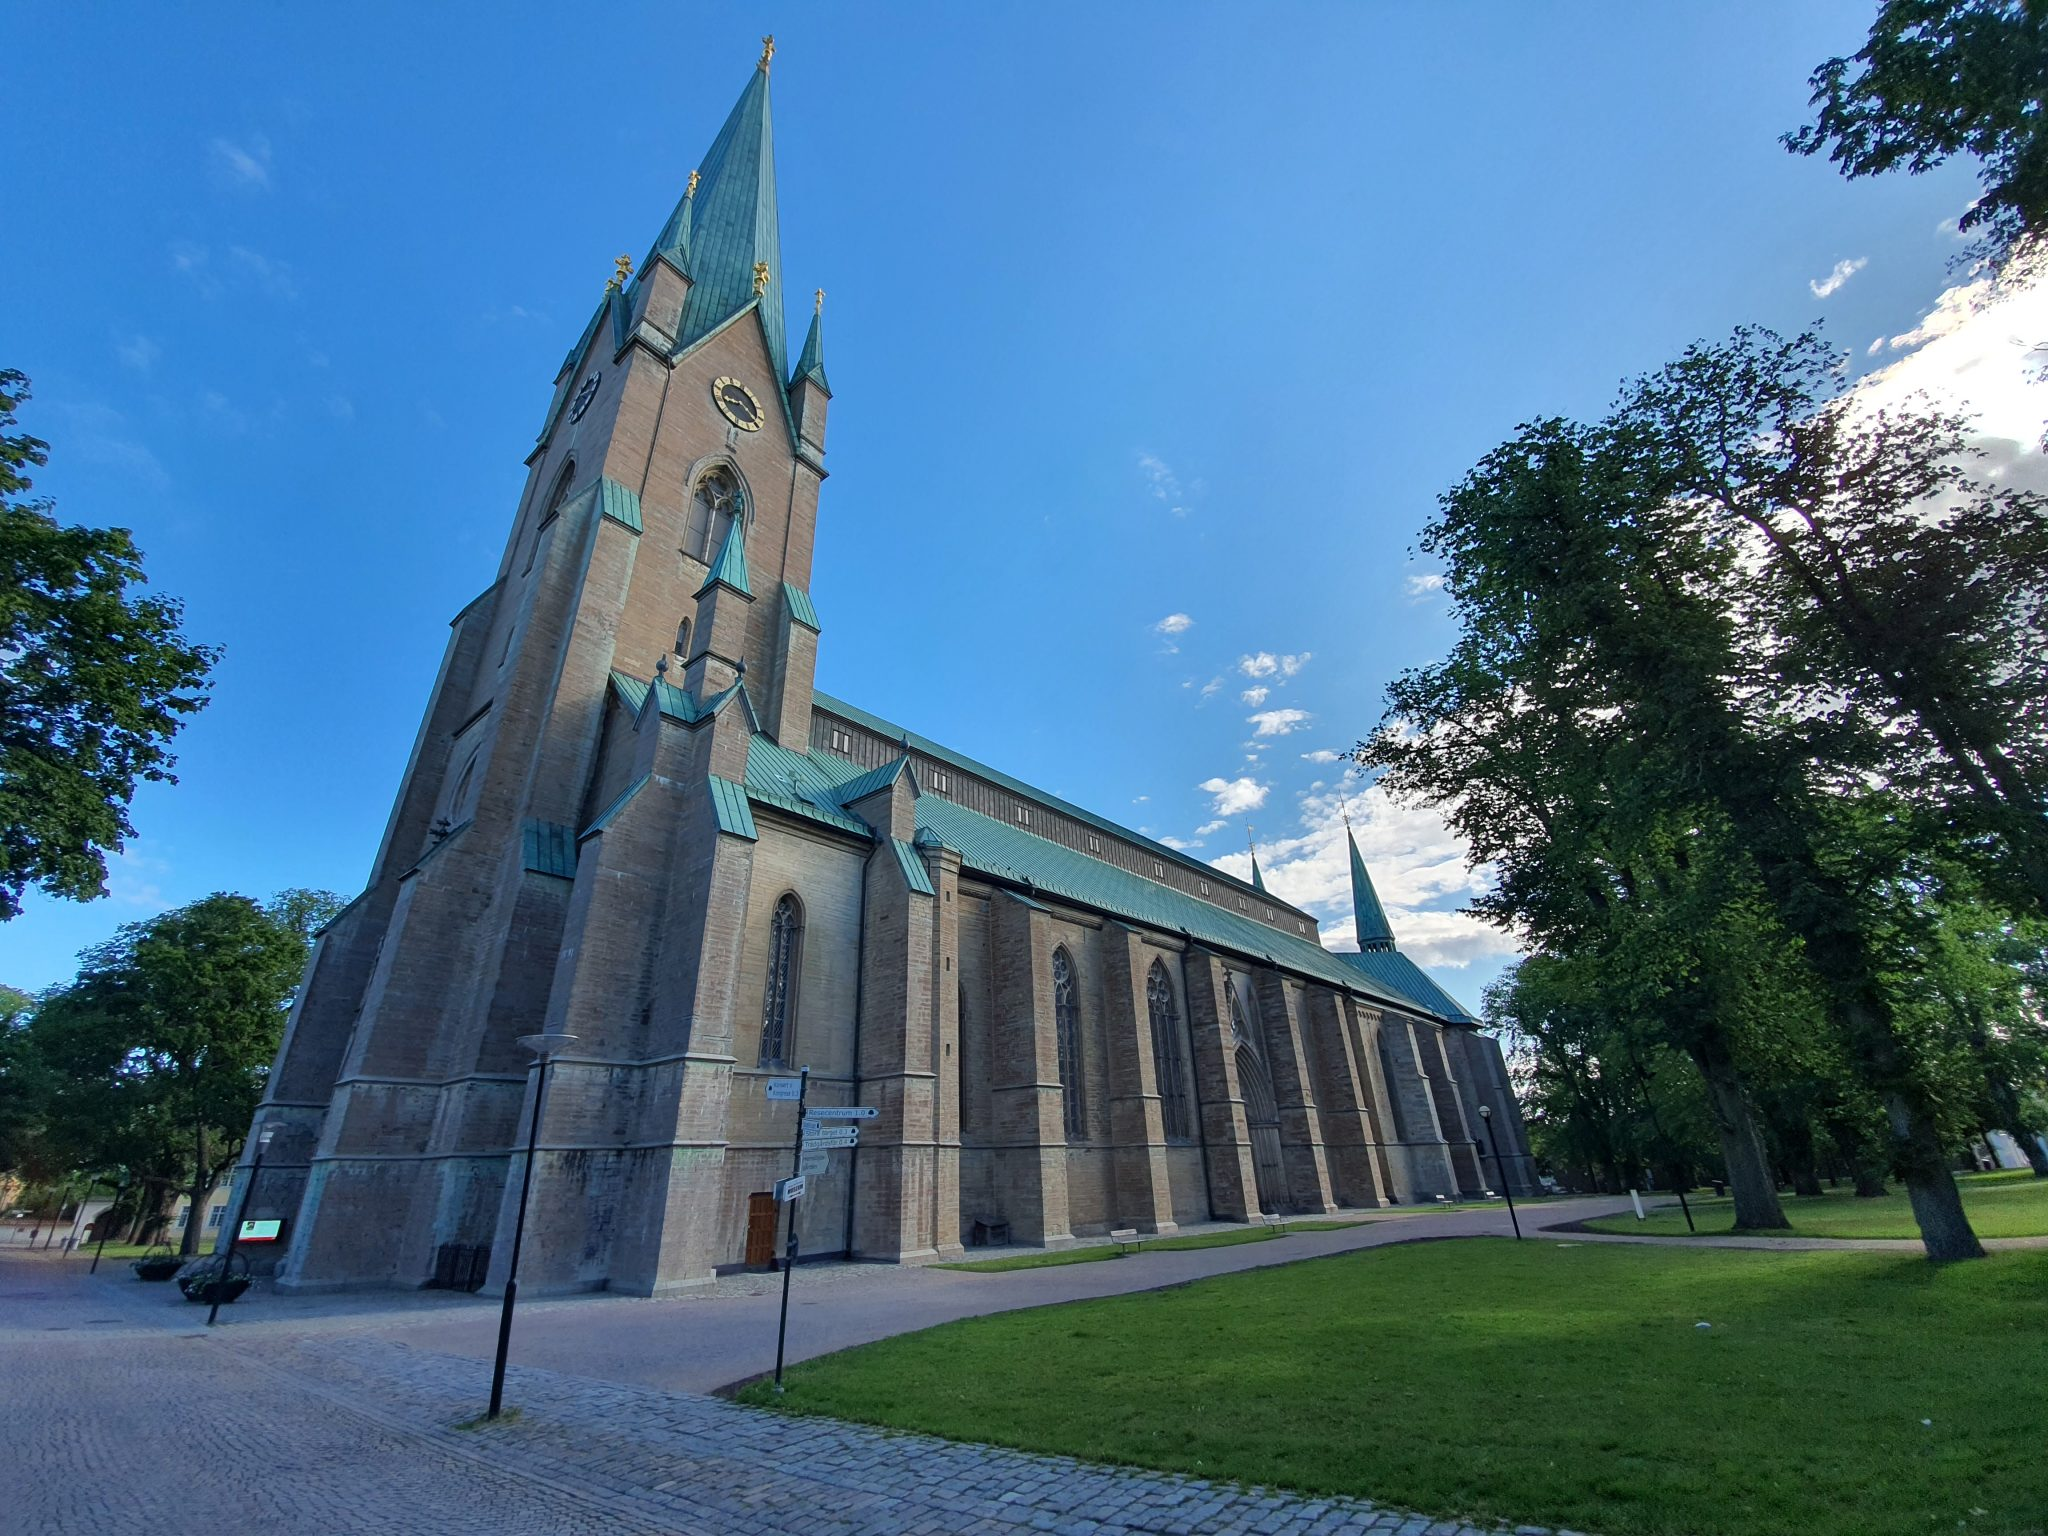 Motorhome in Linköping, Linköping Cathedral